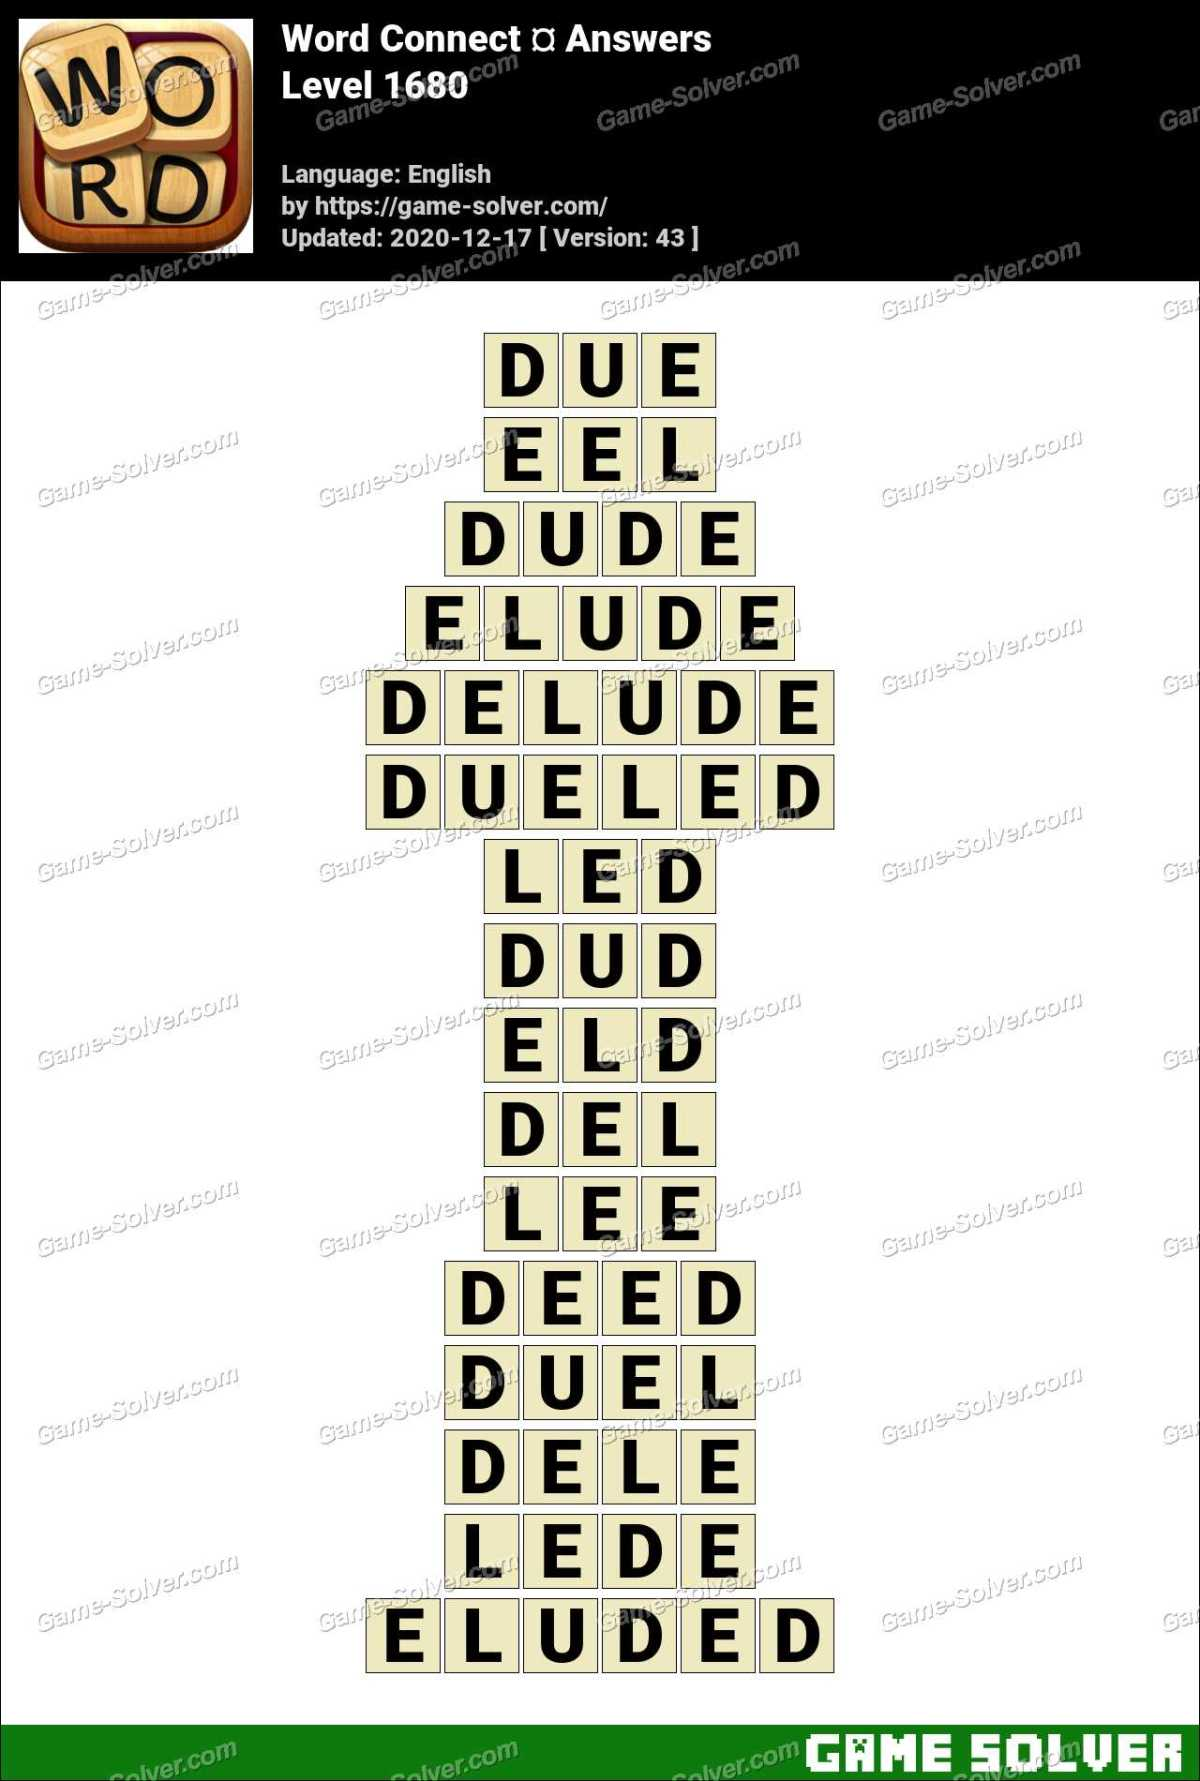 Word Connect Level 1680 Answers